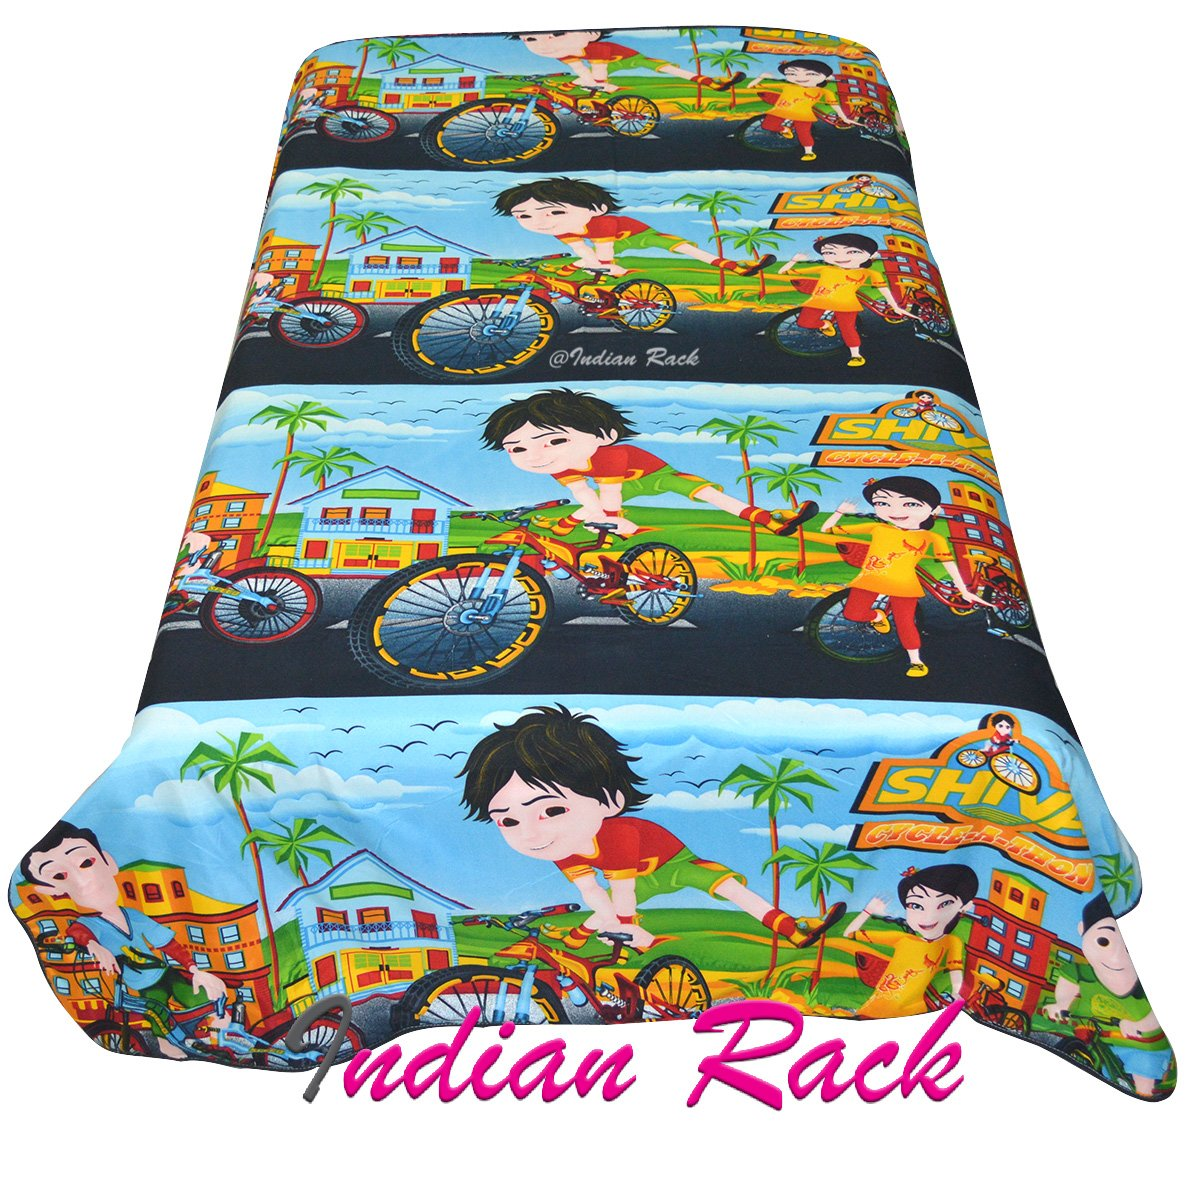 Buy Indian Rack Shiva Cartoon Theme Kids Reversible Dohar Ac Quilt Best Quality 850 Grams Guaranteed For Color And Bubble Online At Low Prices In India Amazon In